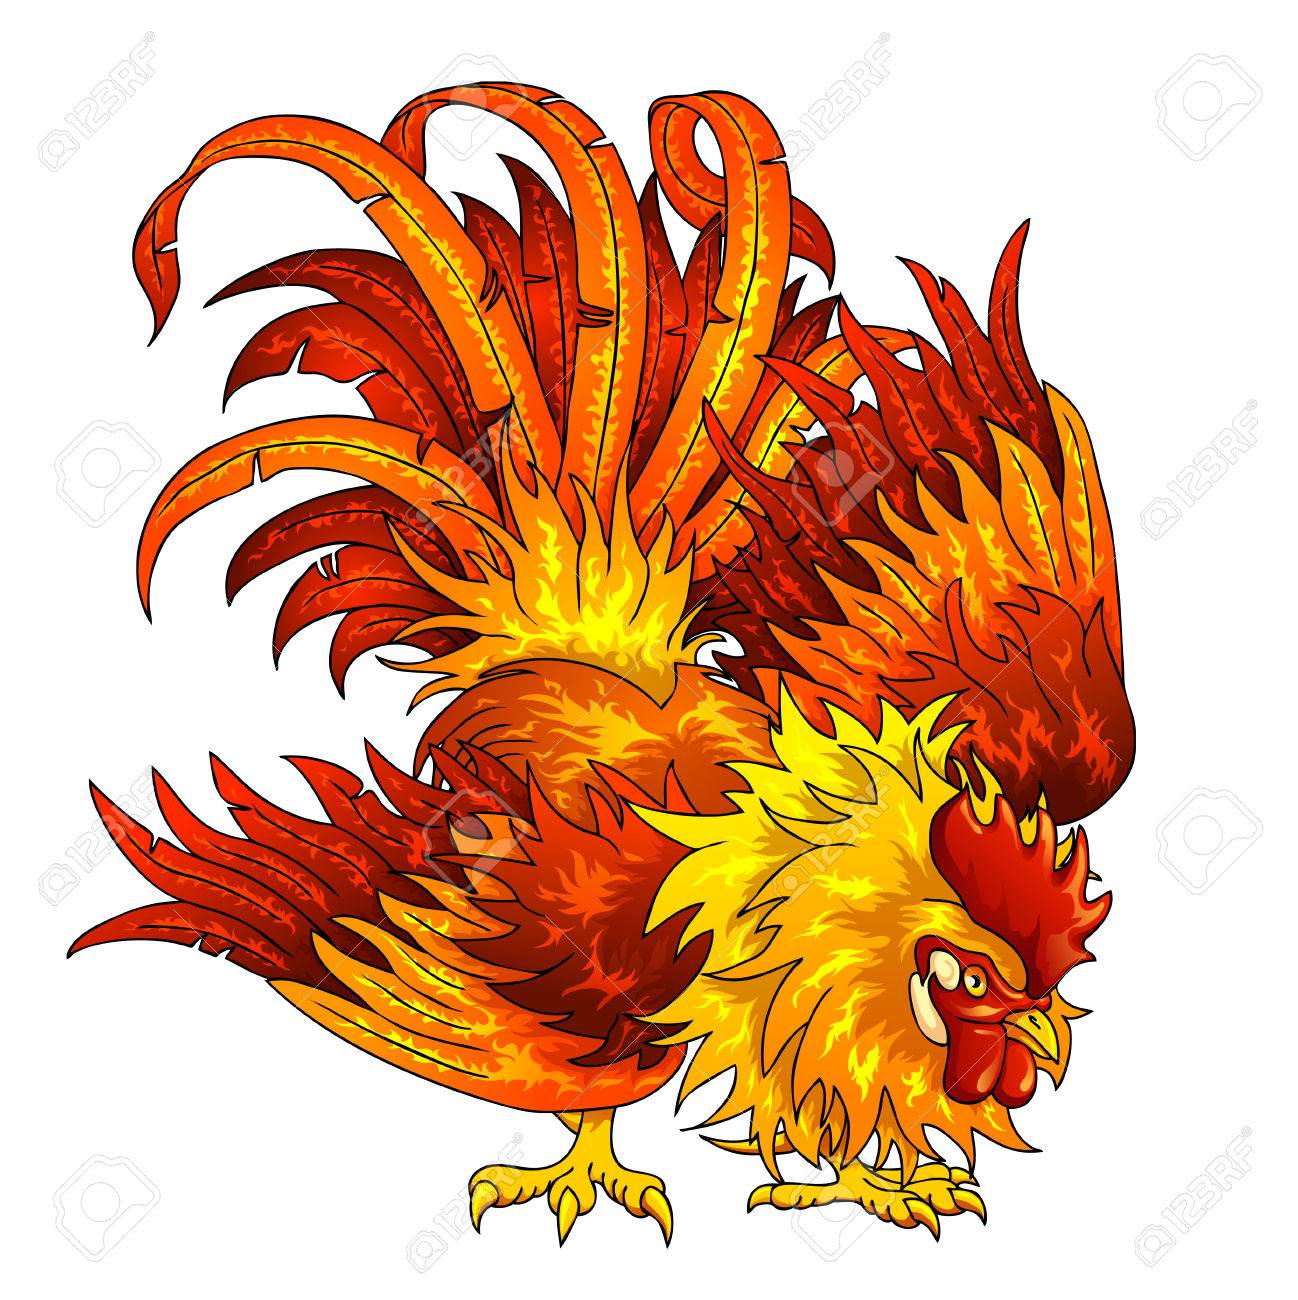 fighting orange red rooster on a white background a symbol of